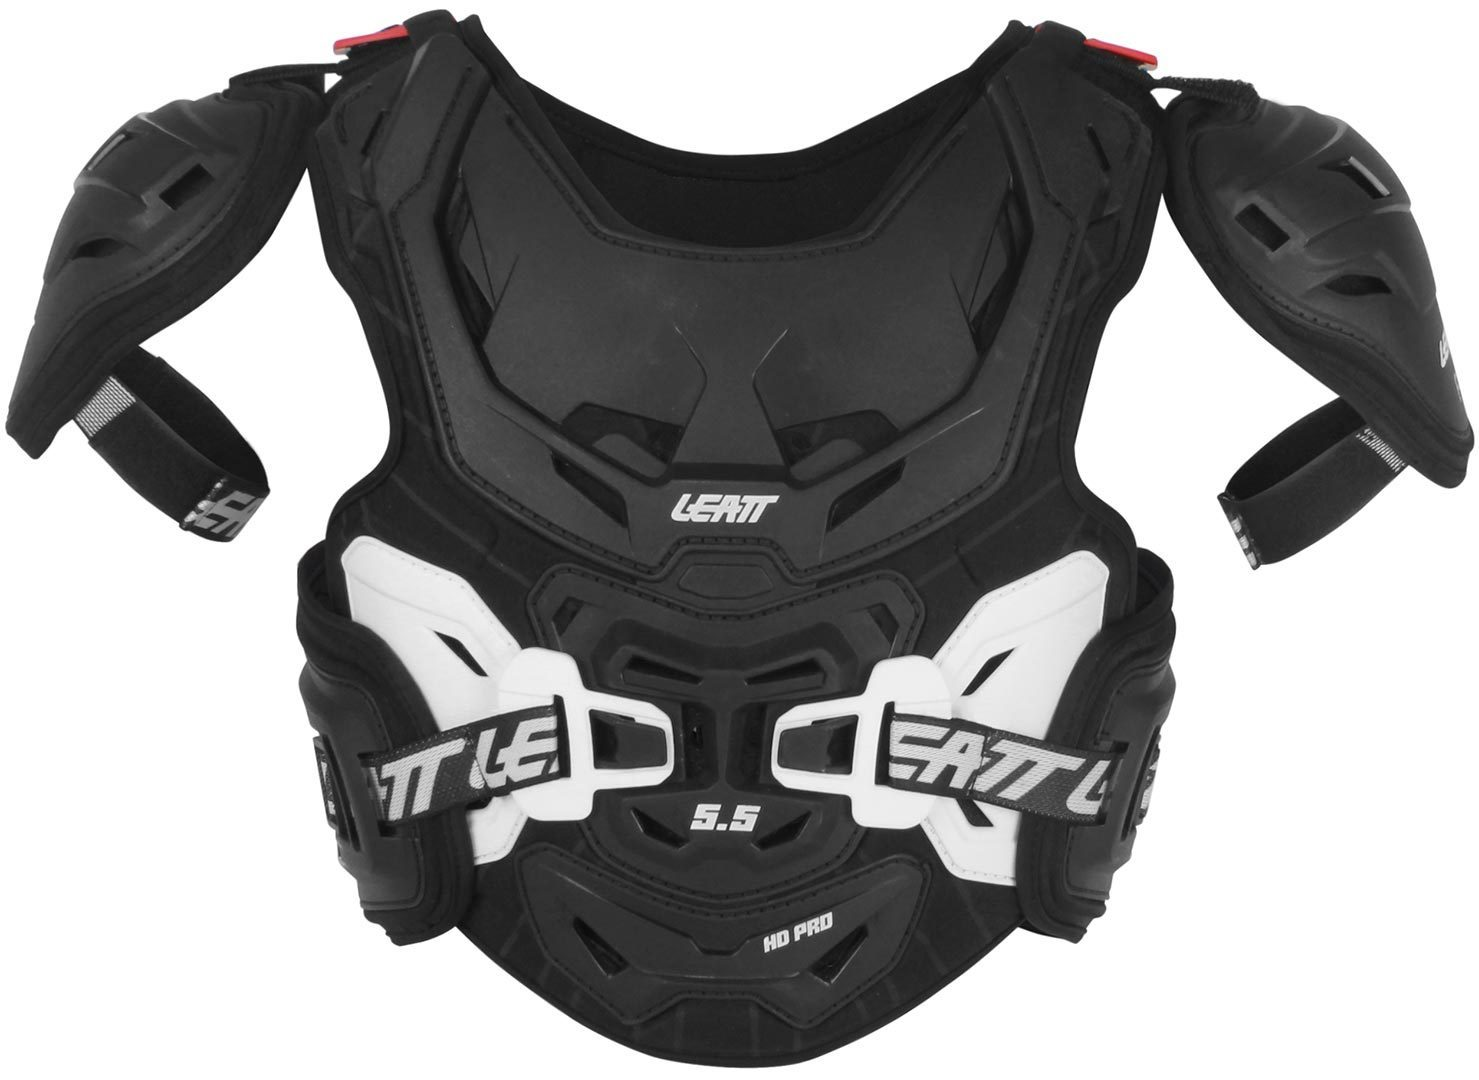 Leatt 5.5 Pro HD Kinder Brustpanzer D9982-5014210131